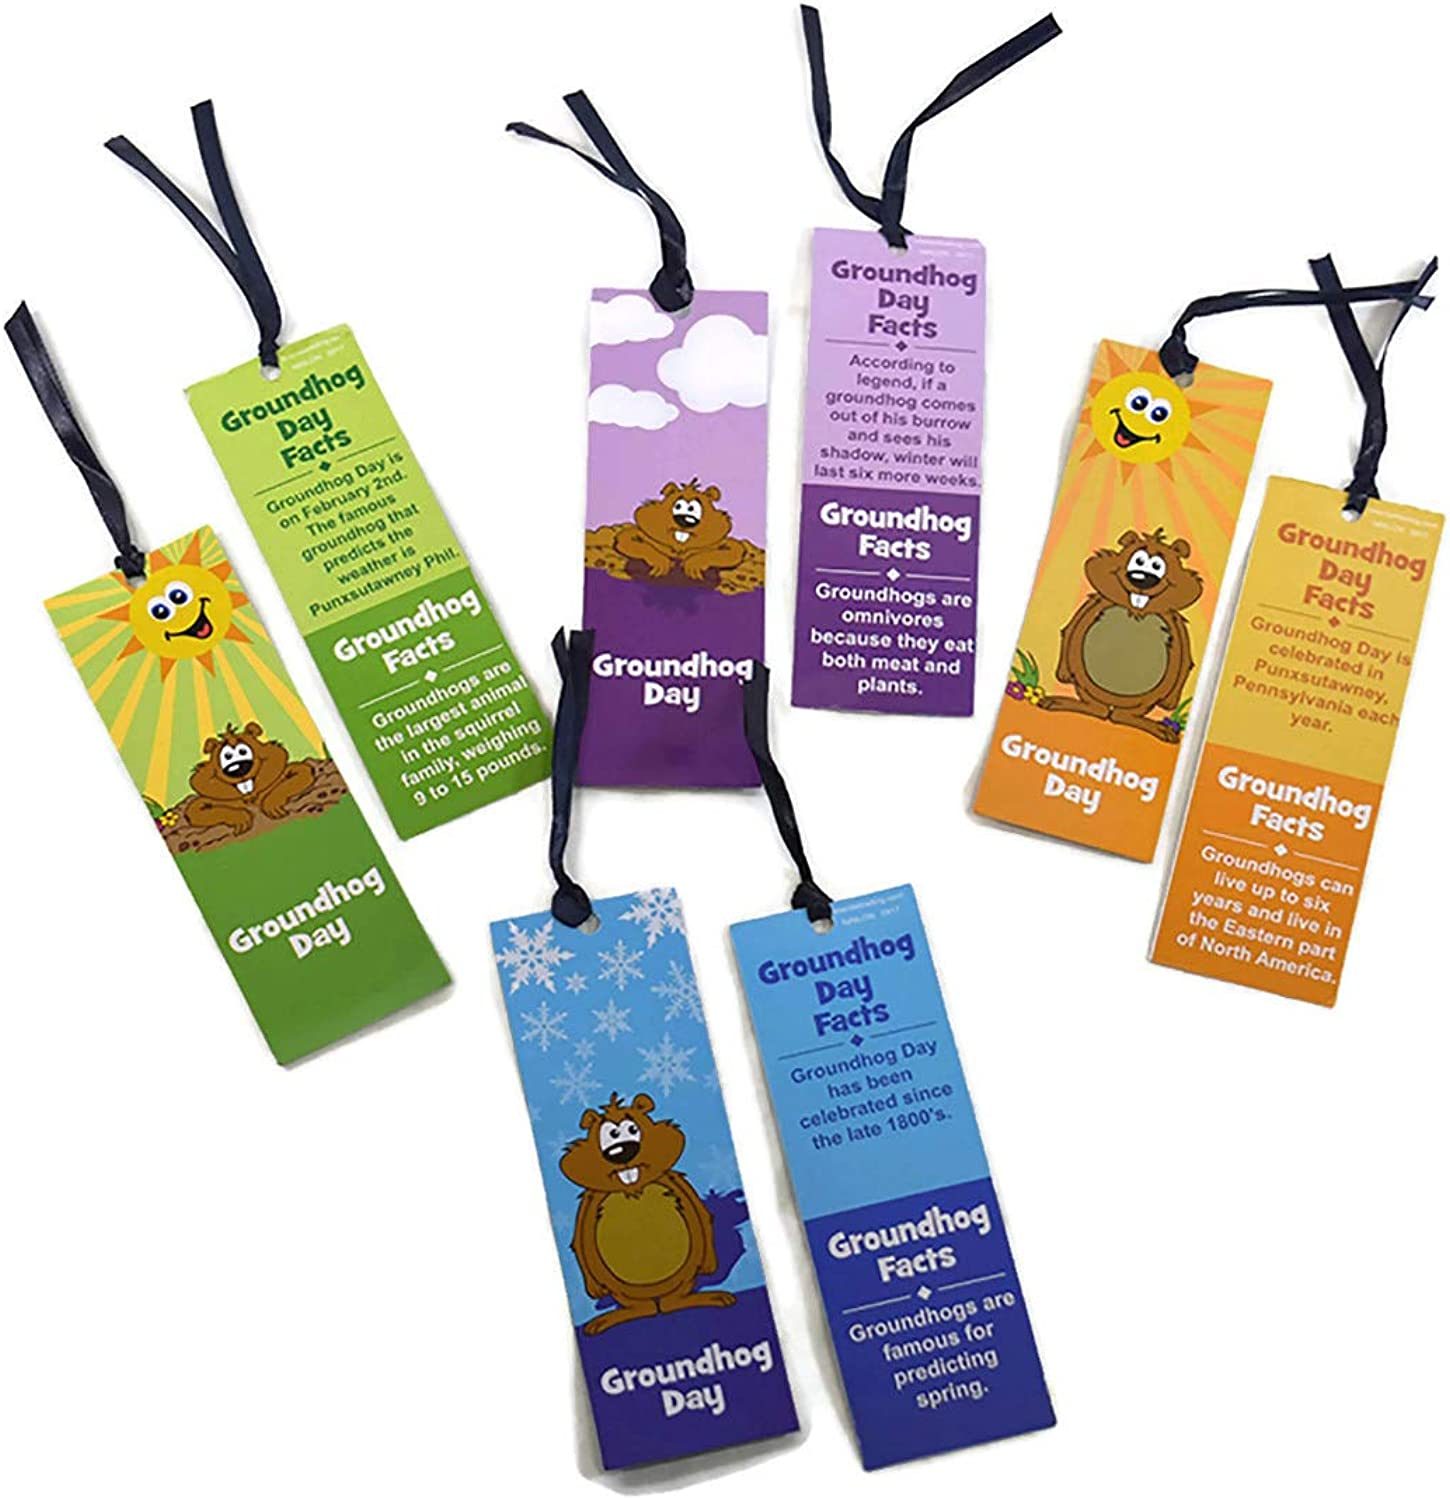 24 Groundhog Day Fact Laminated Bookmarks  New